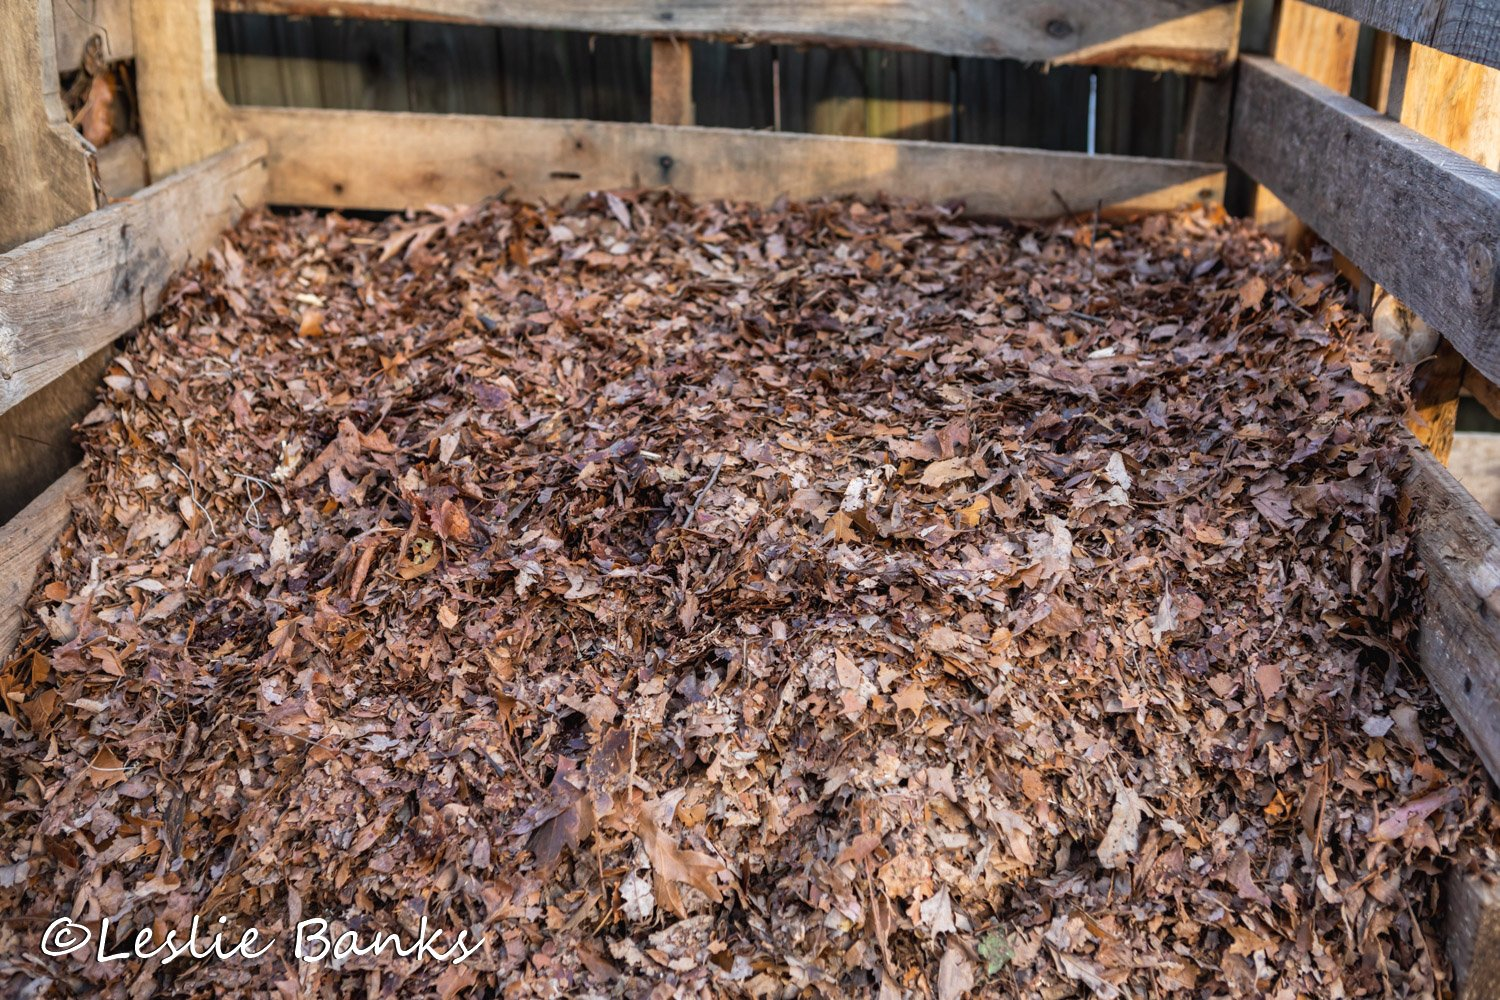 Mulched Leaves